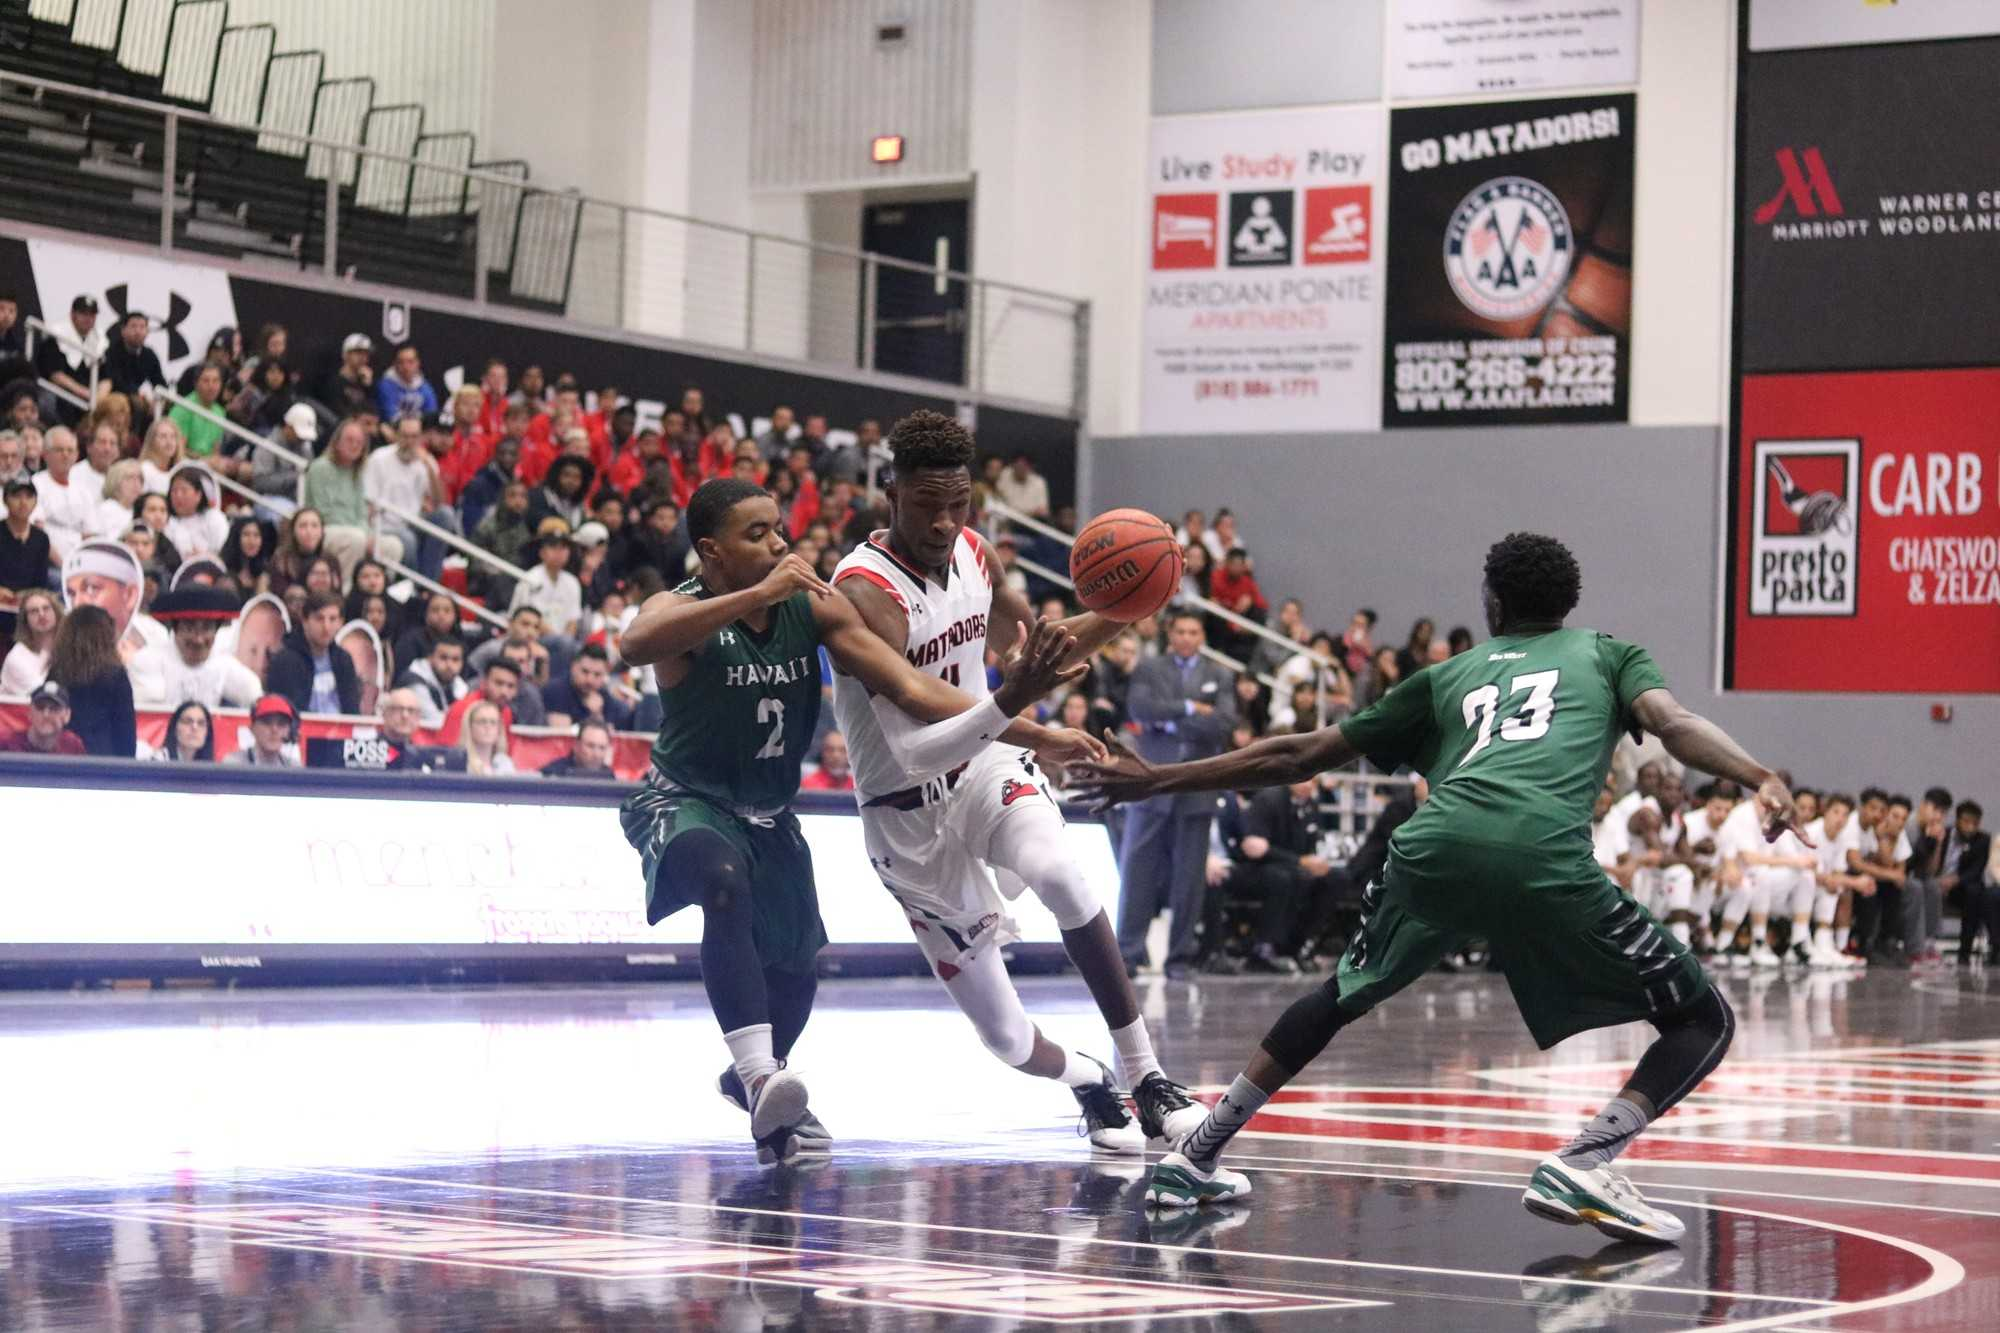 CSUN's junior forward, Tavrion Dawson, goes in for a layup while being double-teamed by Hawai'i's, Brocke Stepteau and Sheriff Drammeh (left to right), at the Matadome, on Saturday, February 4th. Photo credit: Lauren Valencia